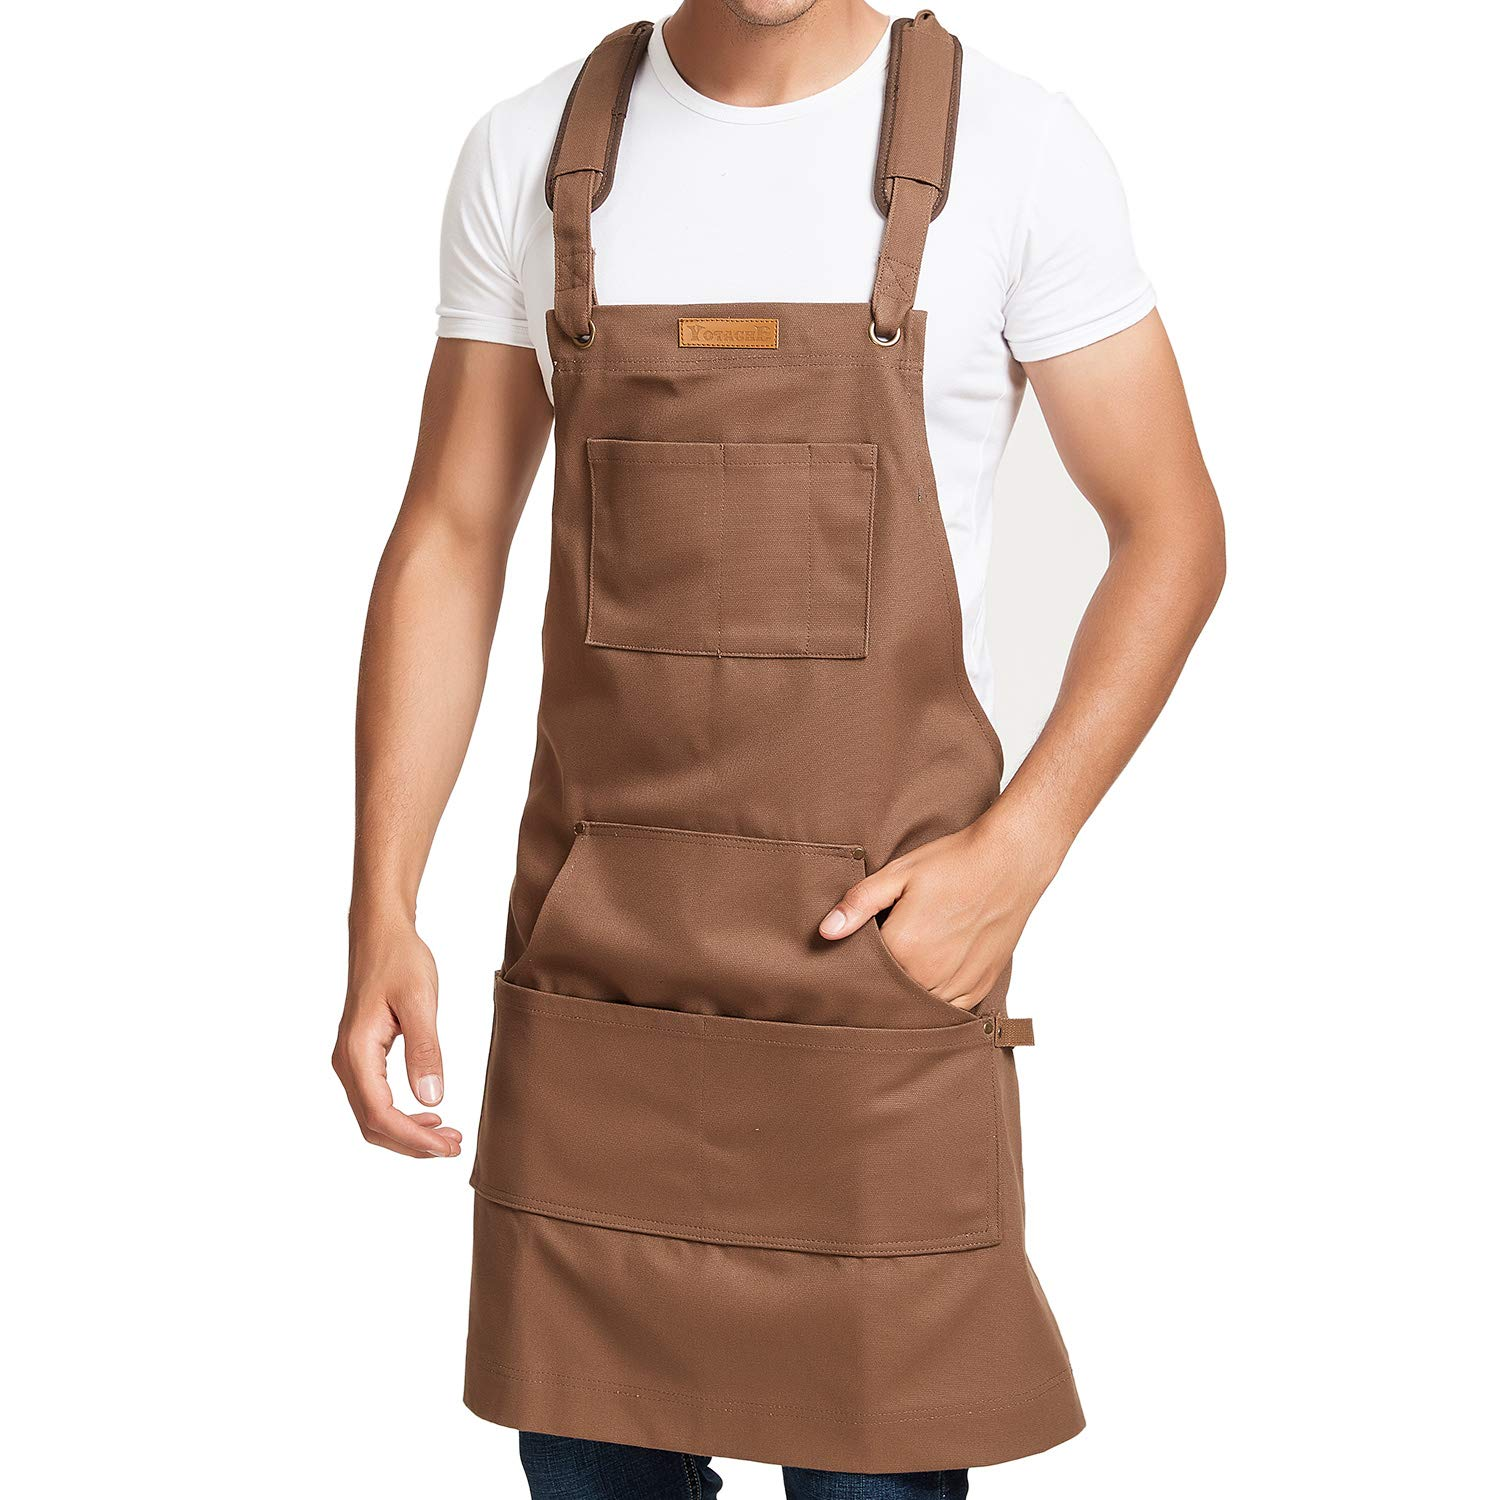 Waxed Canvas Shop Apron Men Kitchen Apron with Shoulder Pads Plus Tool Pockets and Hammer Loops Waterproof & Protective for Home, Garden, Carpenter, Machinist, Blacksmith by yotache (Image #1)